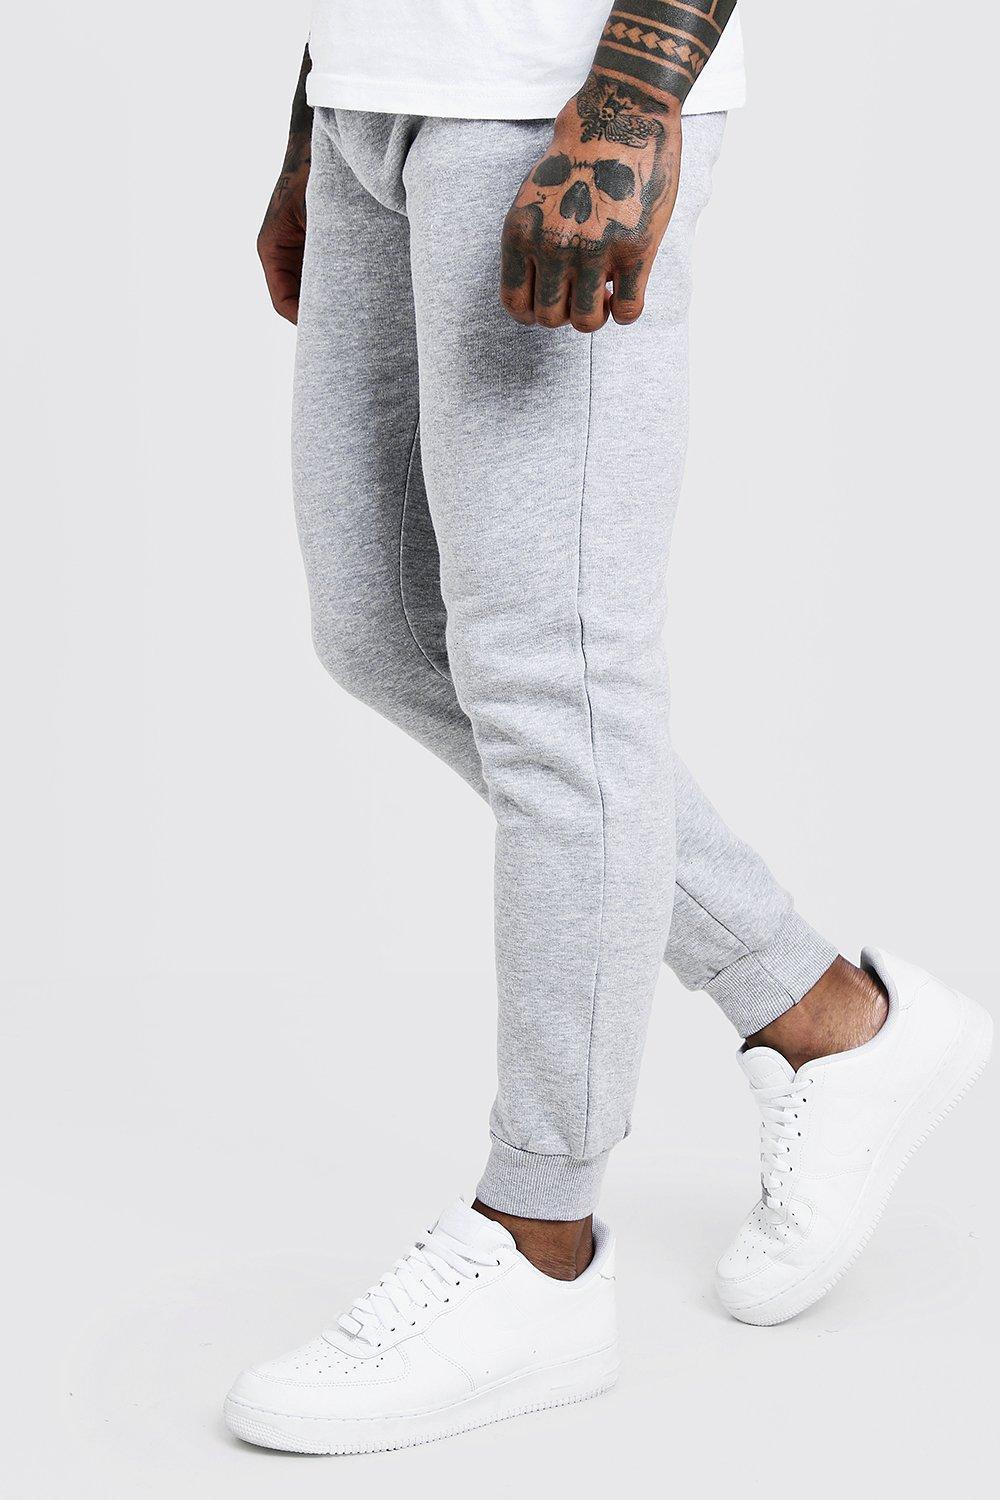 41a6fc64 Lyst - BoohooMAN Man Skinny Joggers in Gray for Men